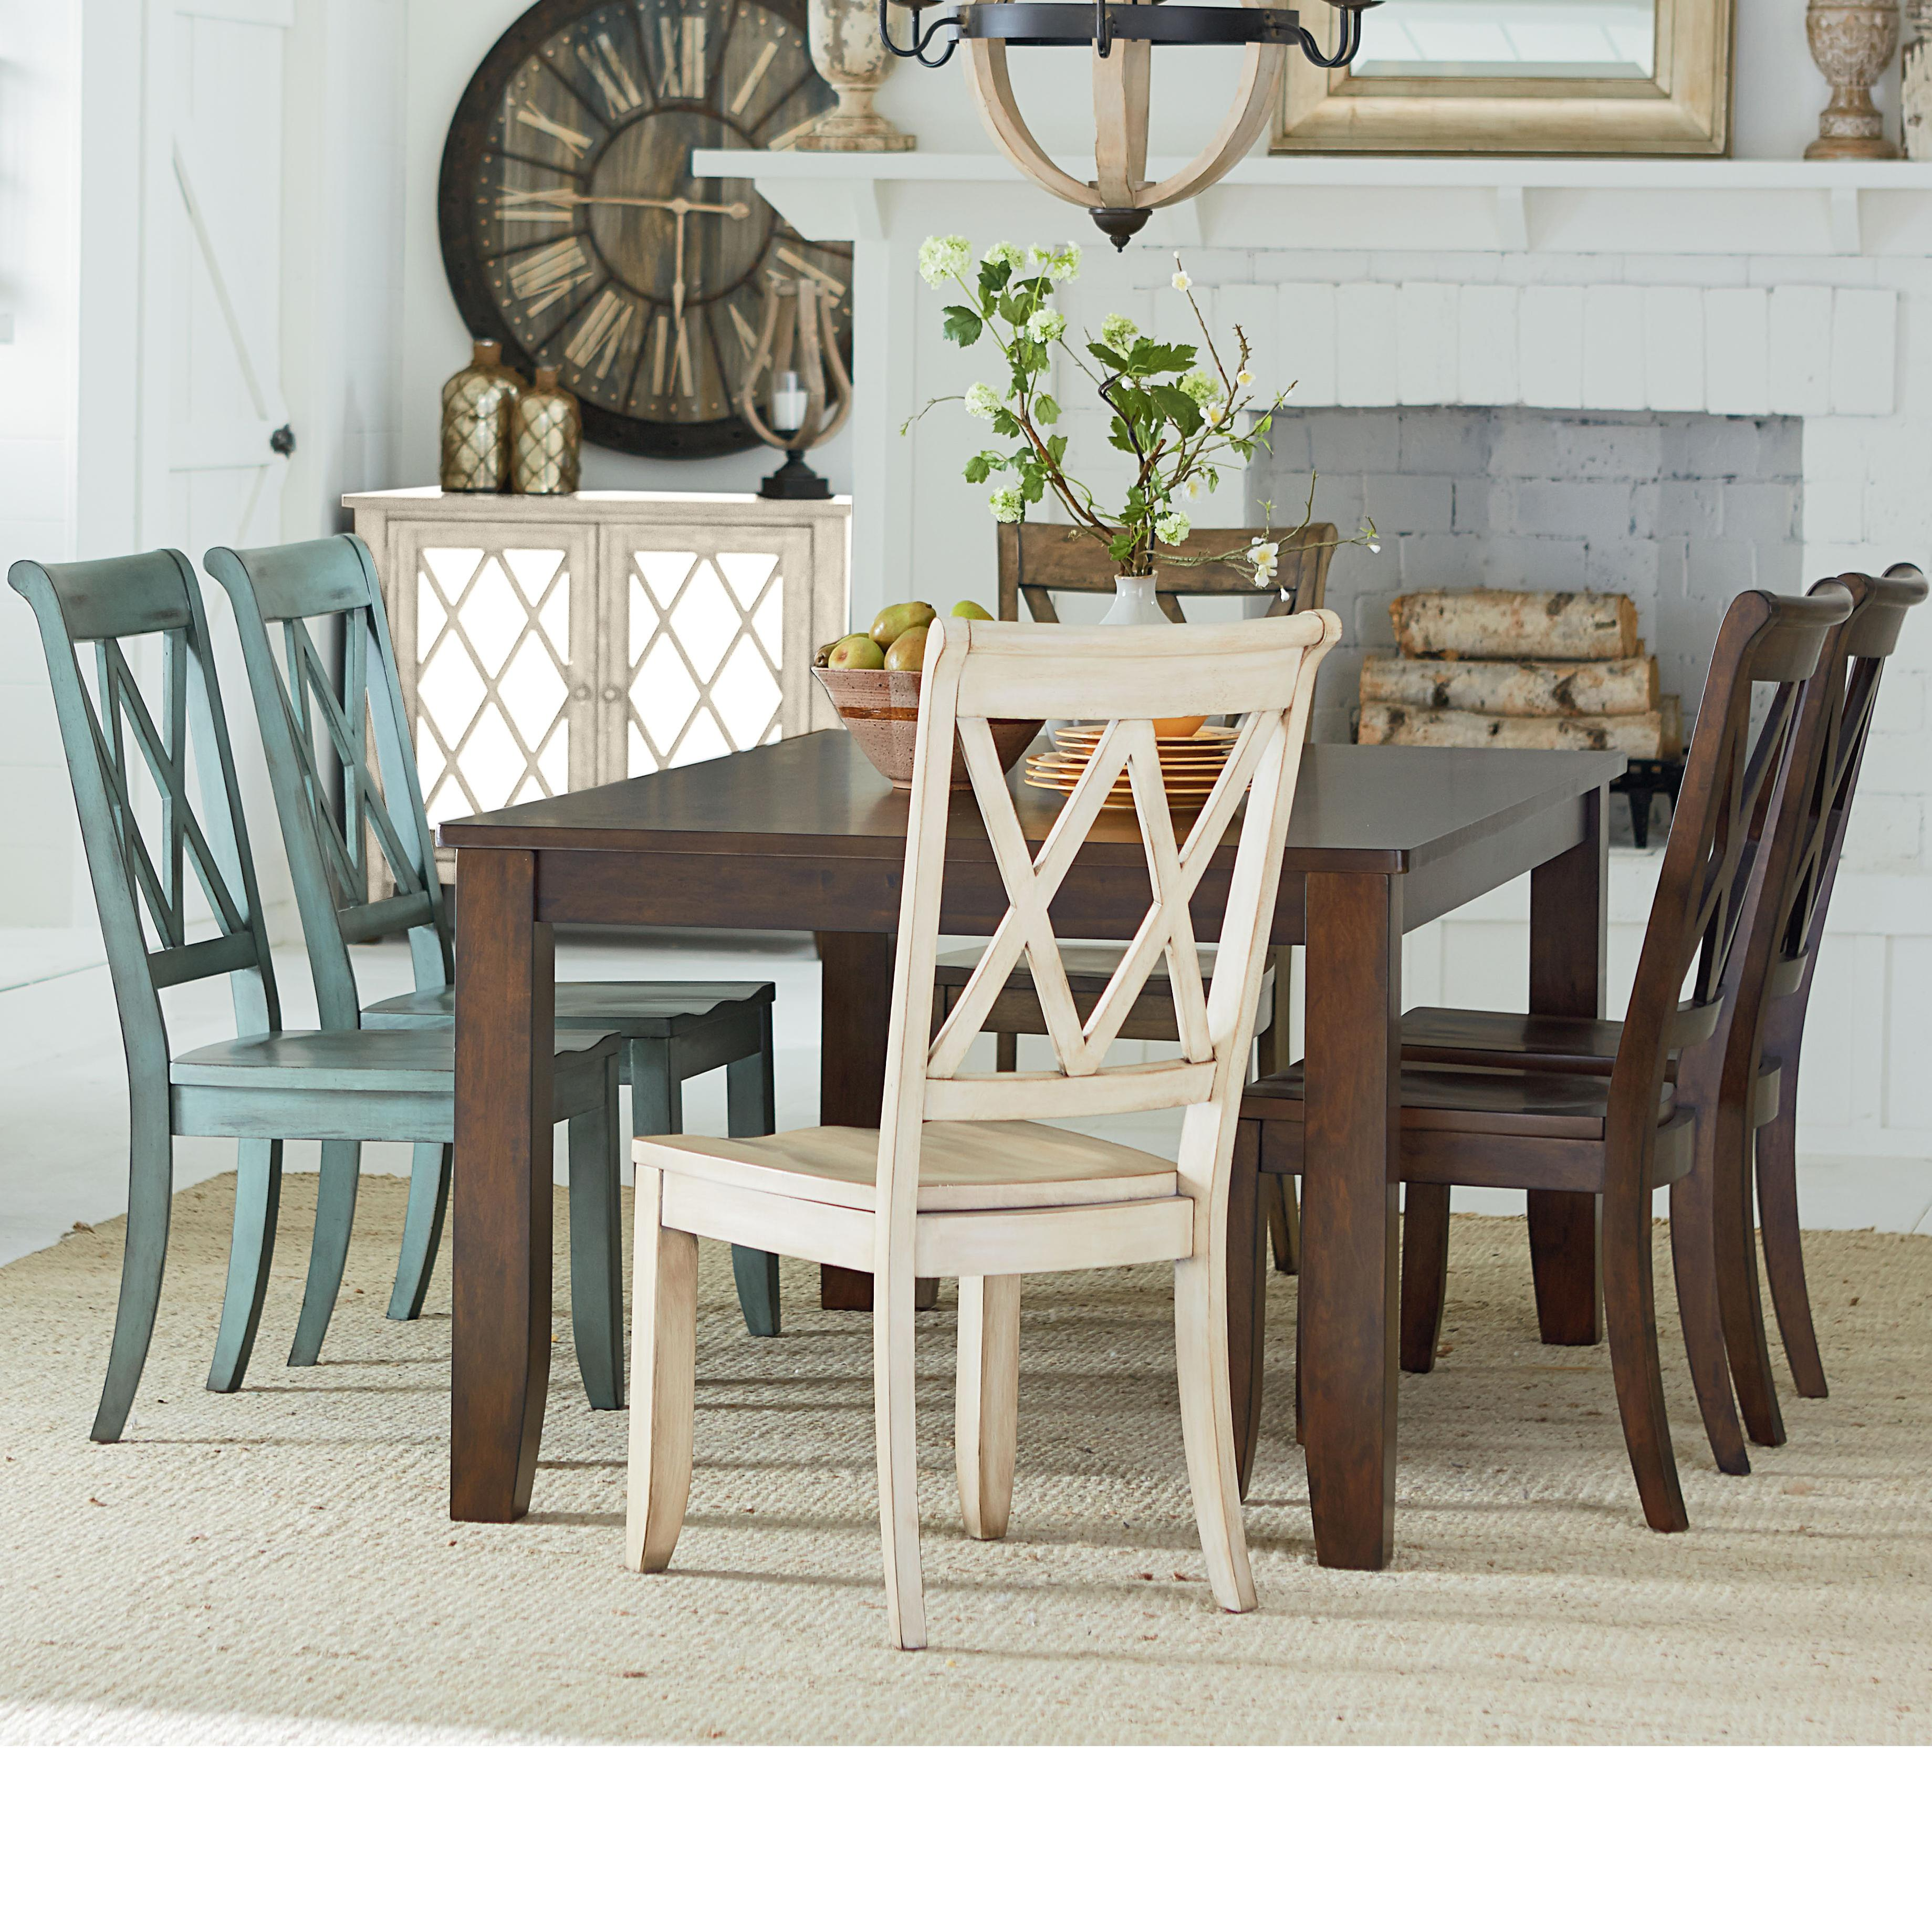 Standard Furniture Vintage Table and Chair Set - Item Number: 11301+2x11311+2x13315+13319+13308